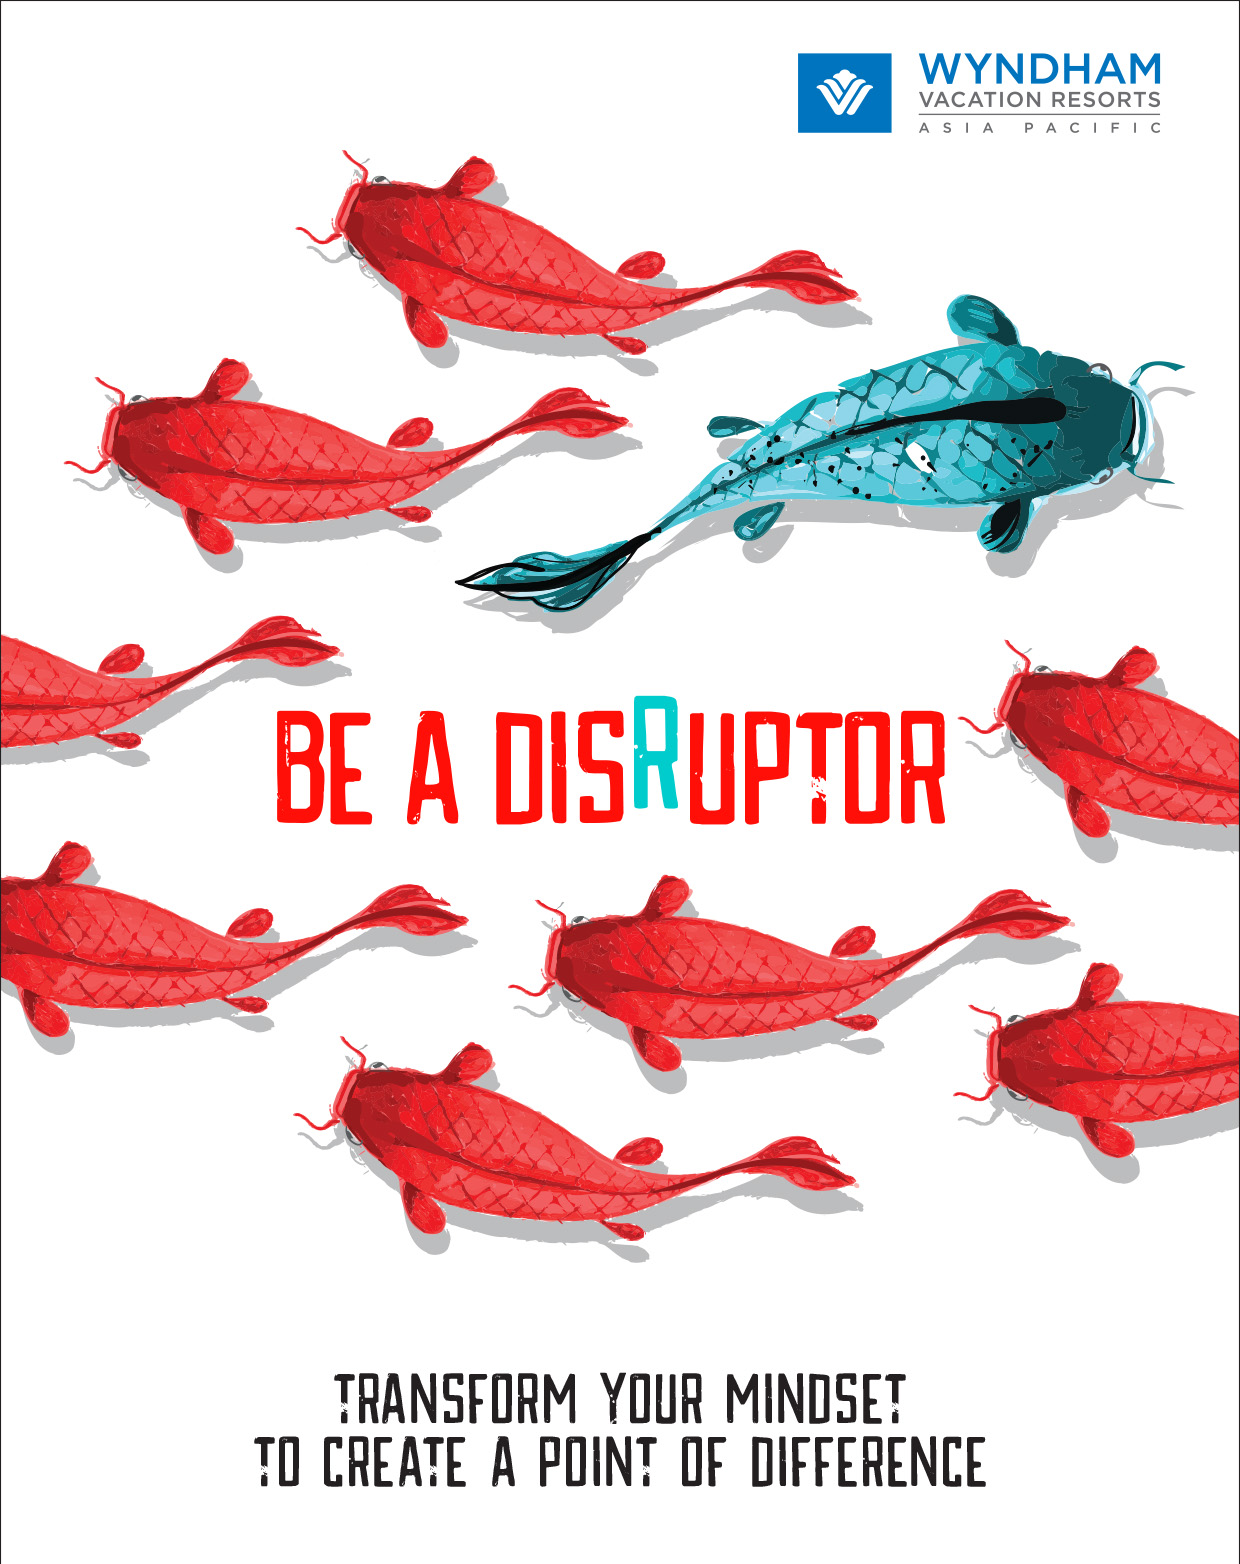 BE A DISRUPTOR